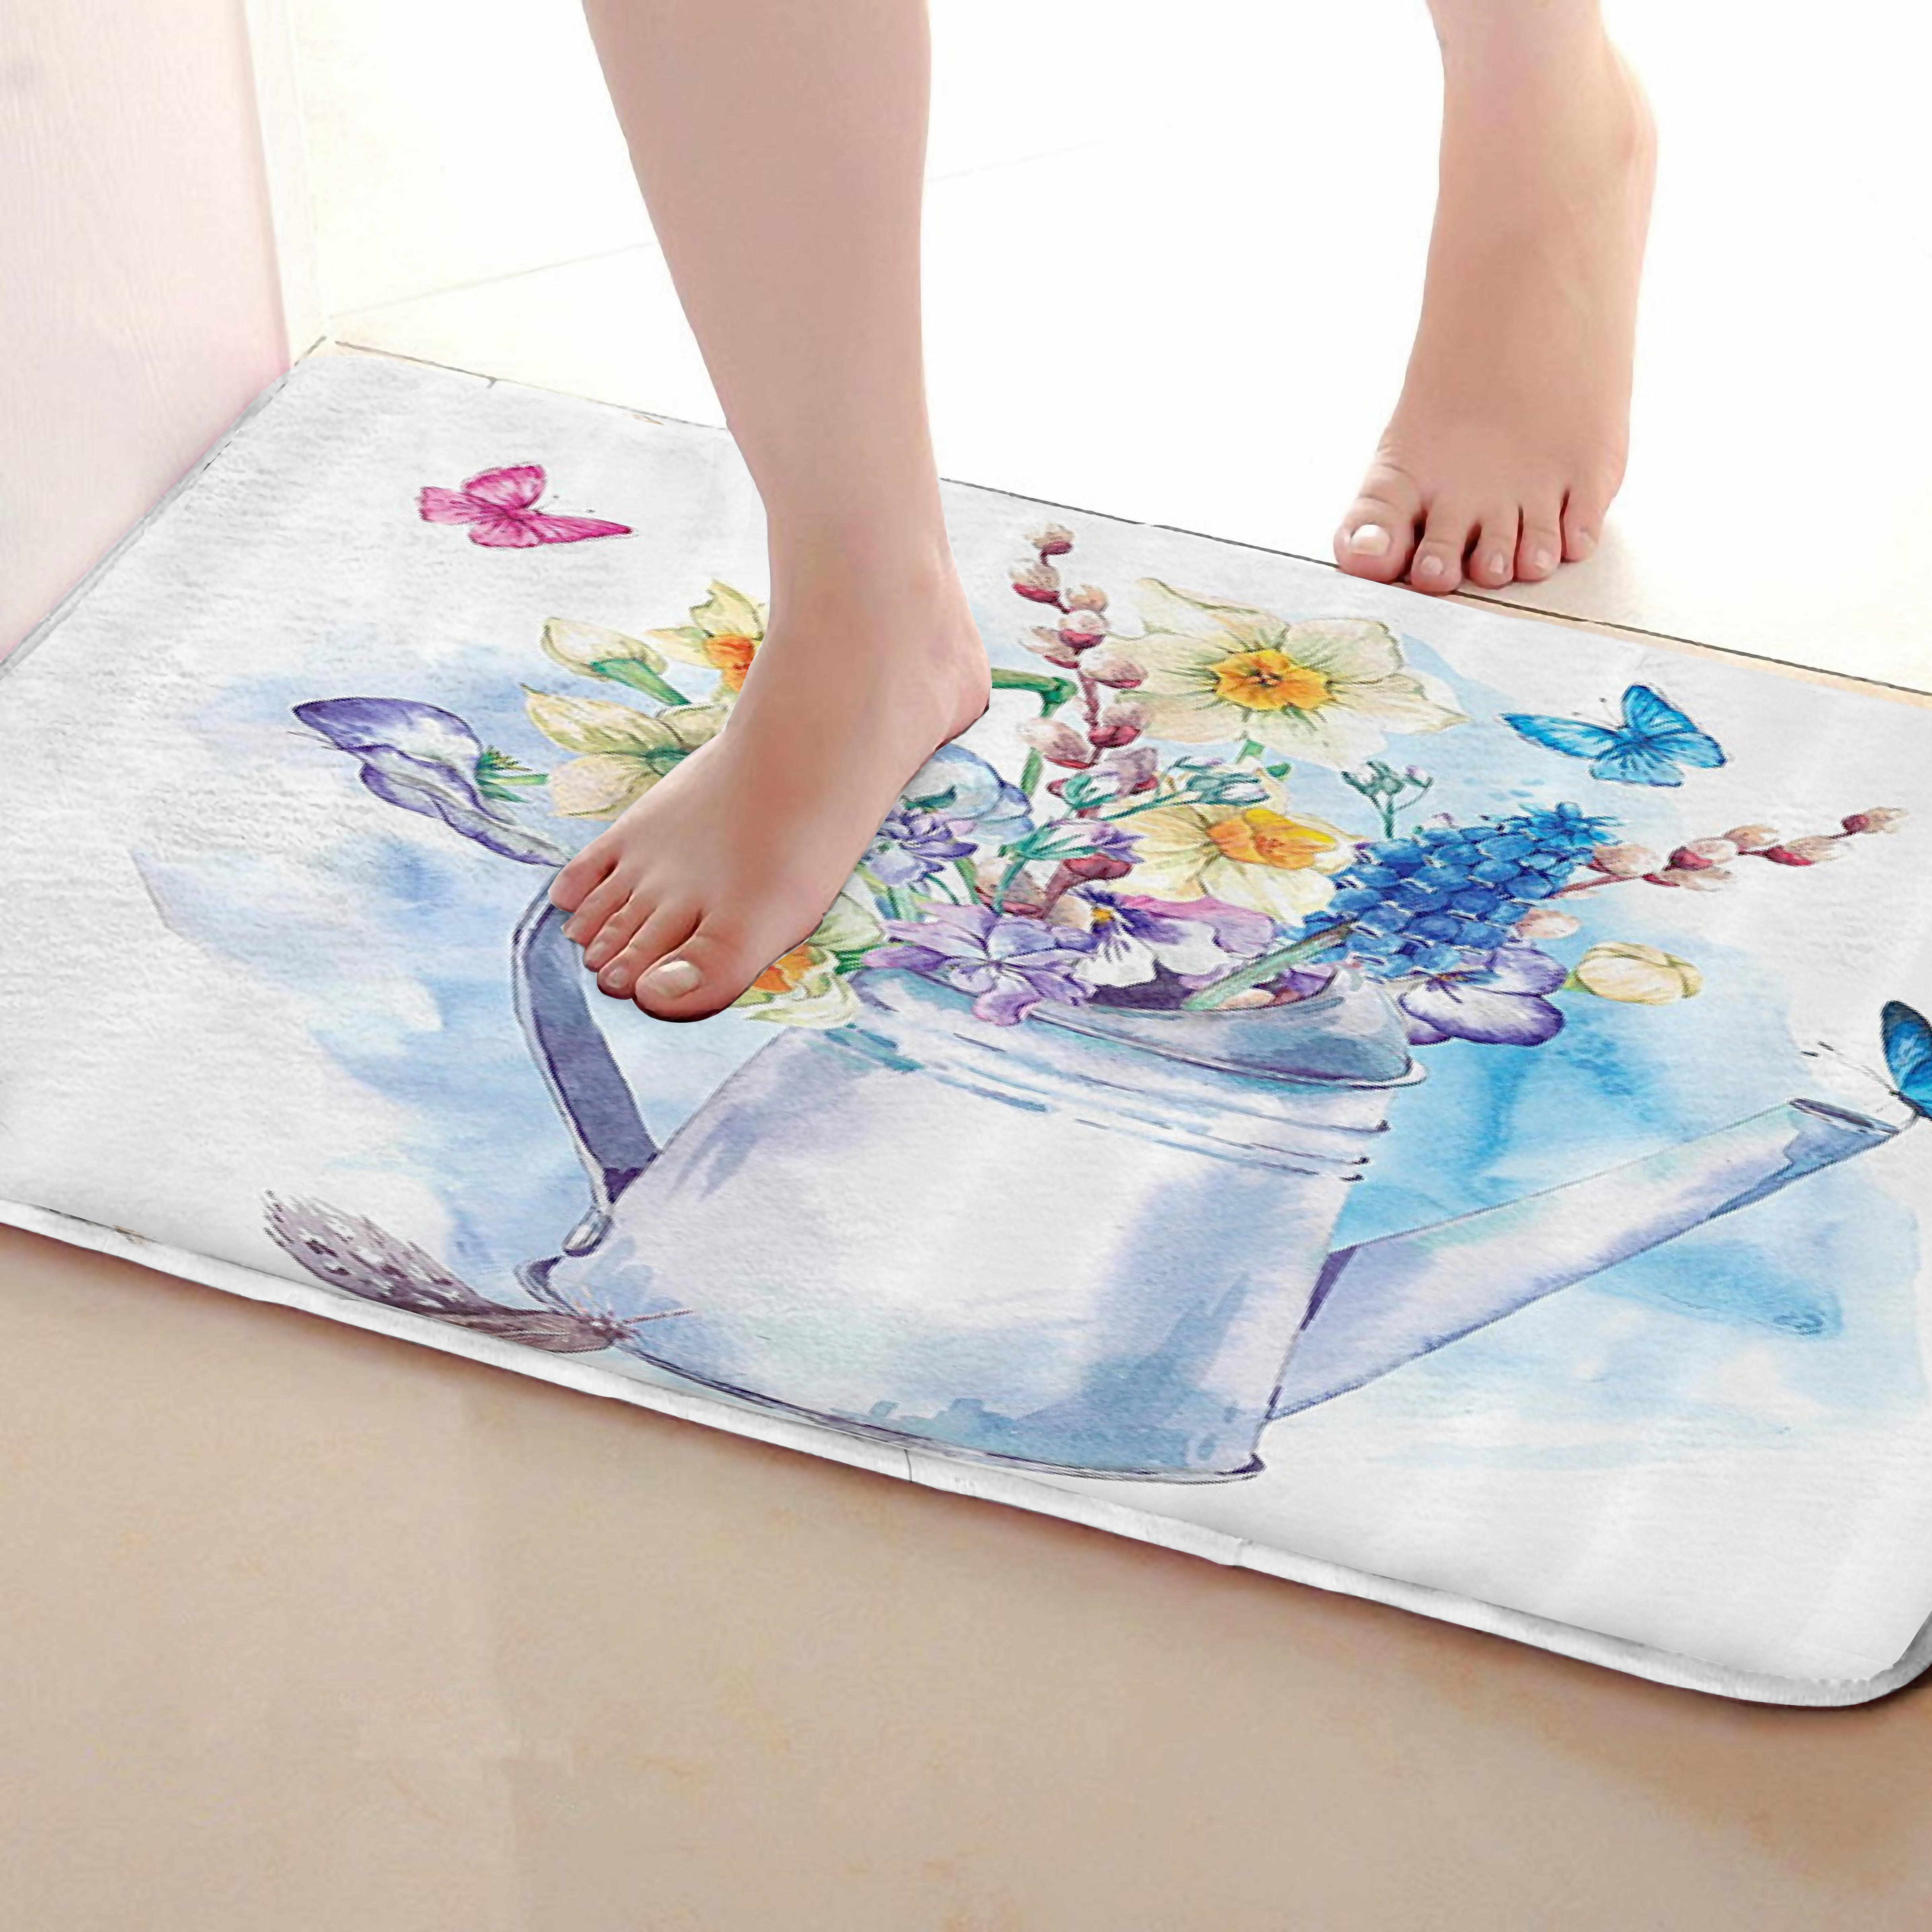 Flower arrangement Style Bathroom Mat,Funny Anti skid Bath Mat,Shower Curtains Accessories,Matching Your Shower Curtain